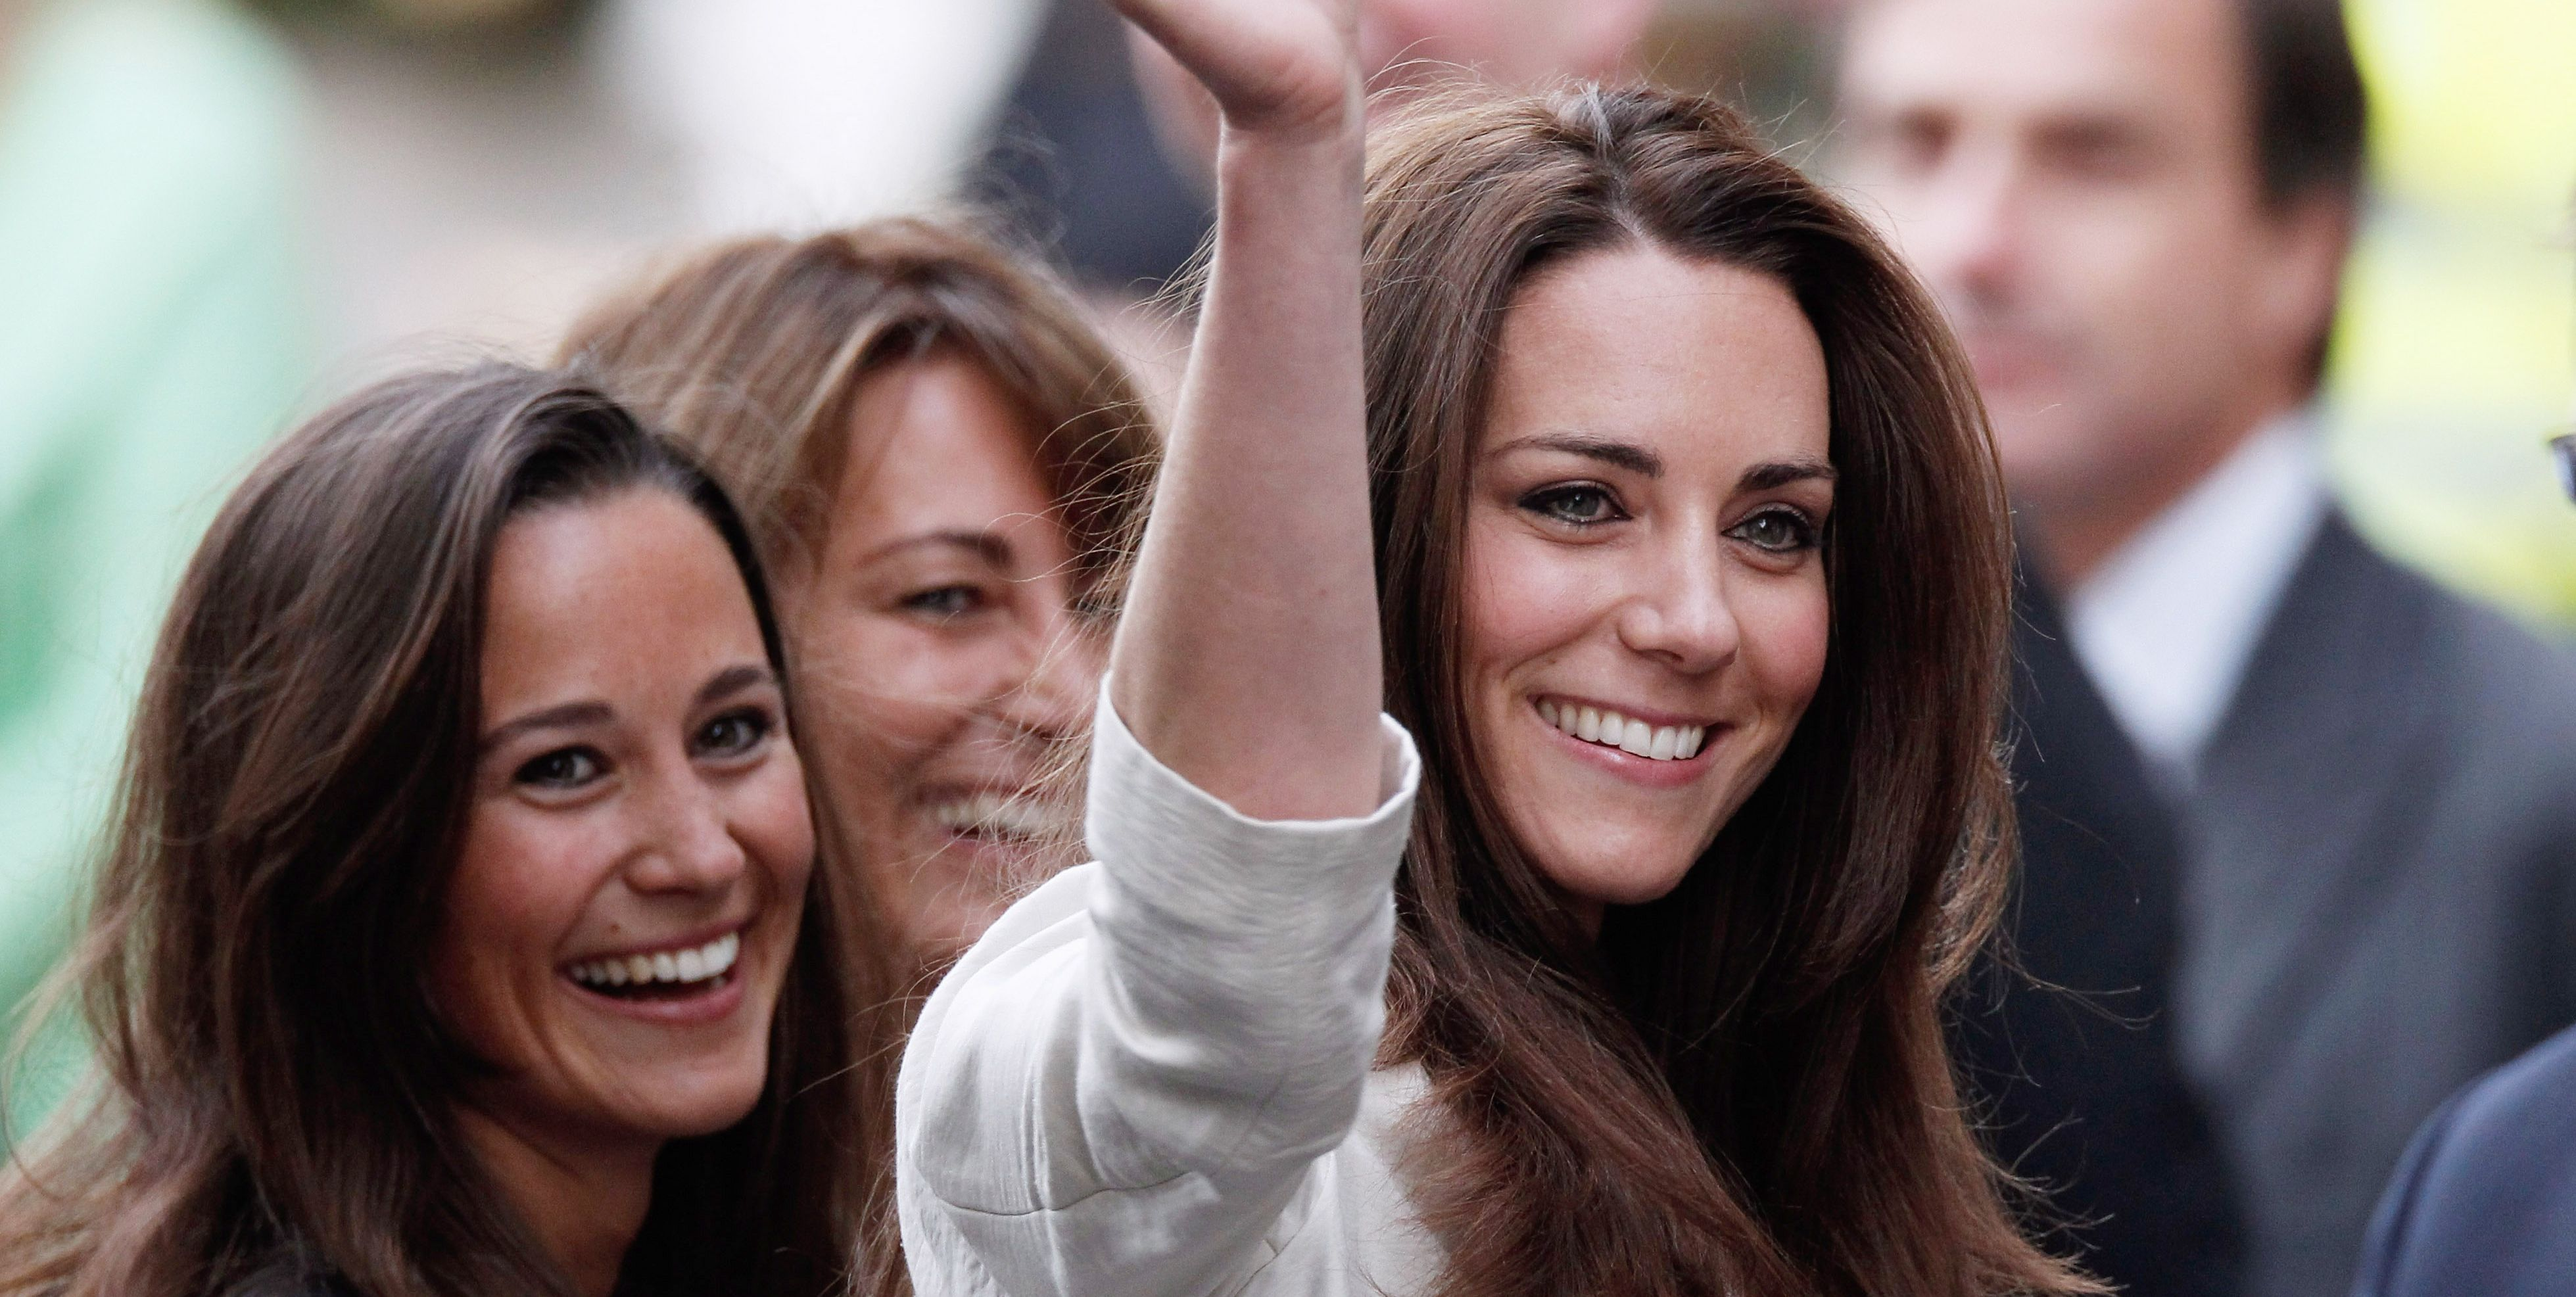 Kate and Pippa Middleton Are Selling Their $2.5 Million London Apartment